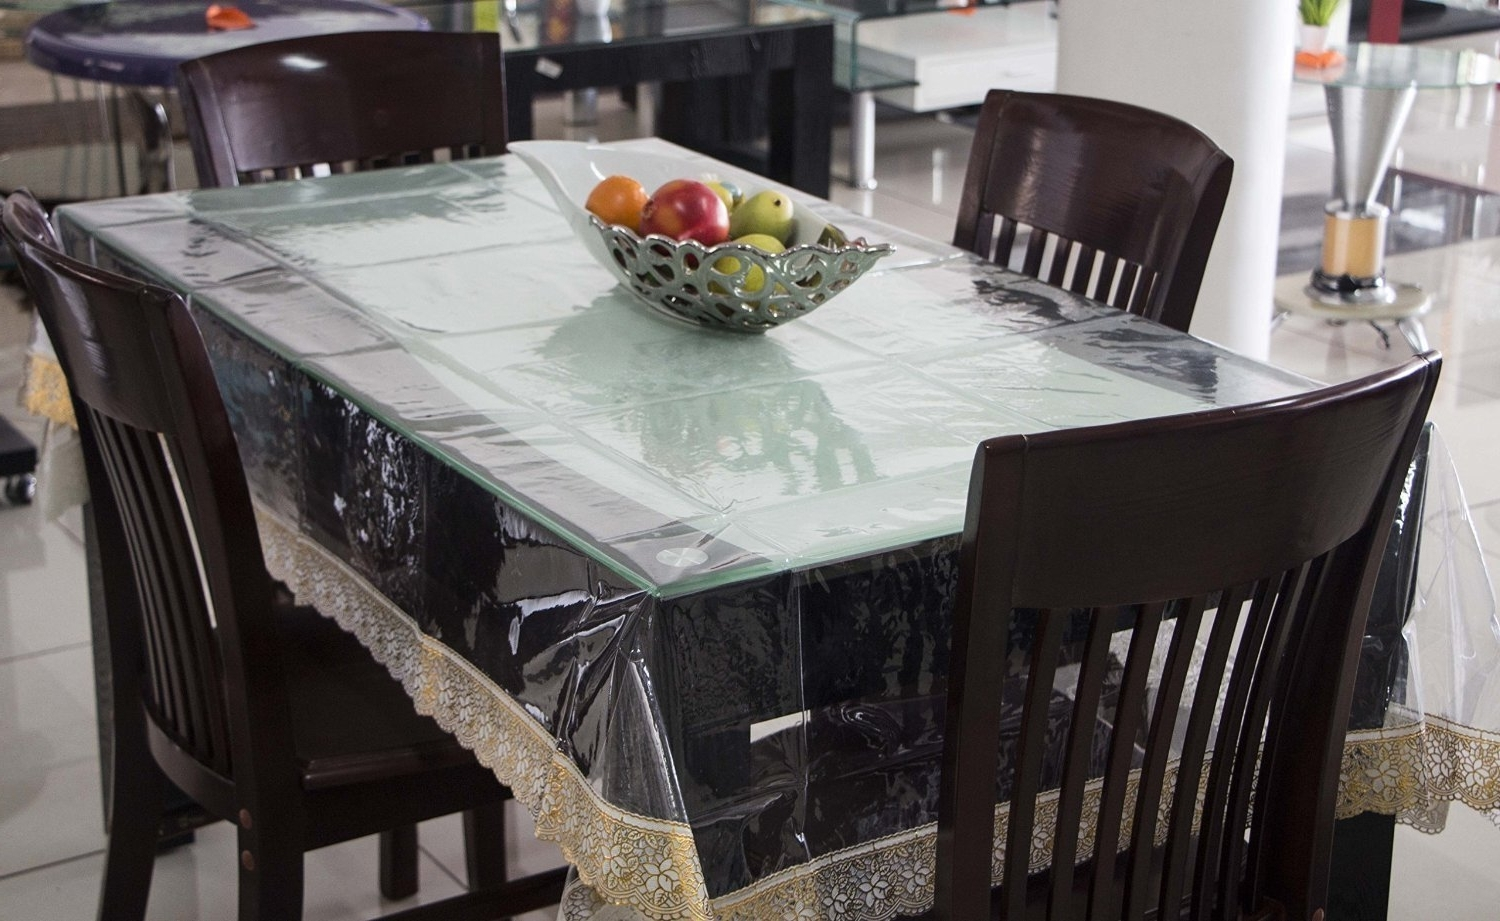 Recent Clear Plastic Dining Room Table Covers – Dining Tables Ideas Throughout Clear Plastic Dining Tables (View 20 of 25)